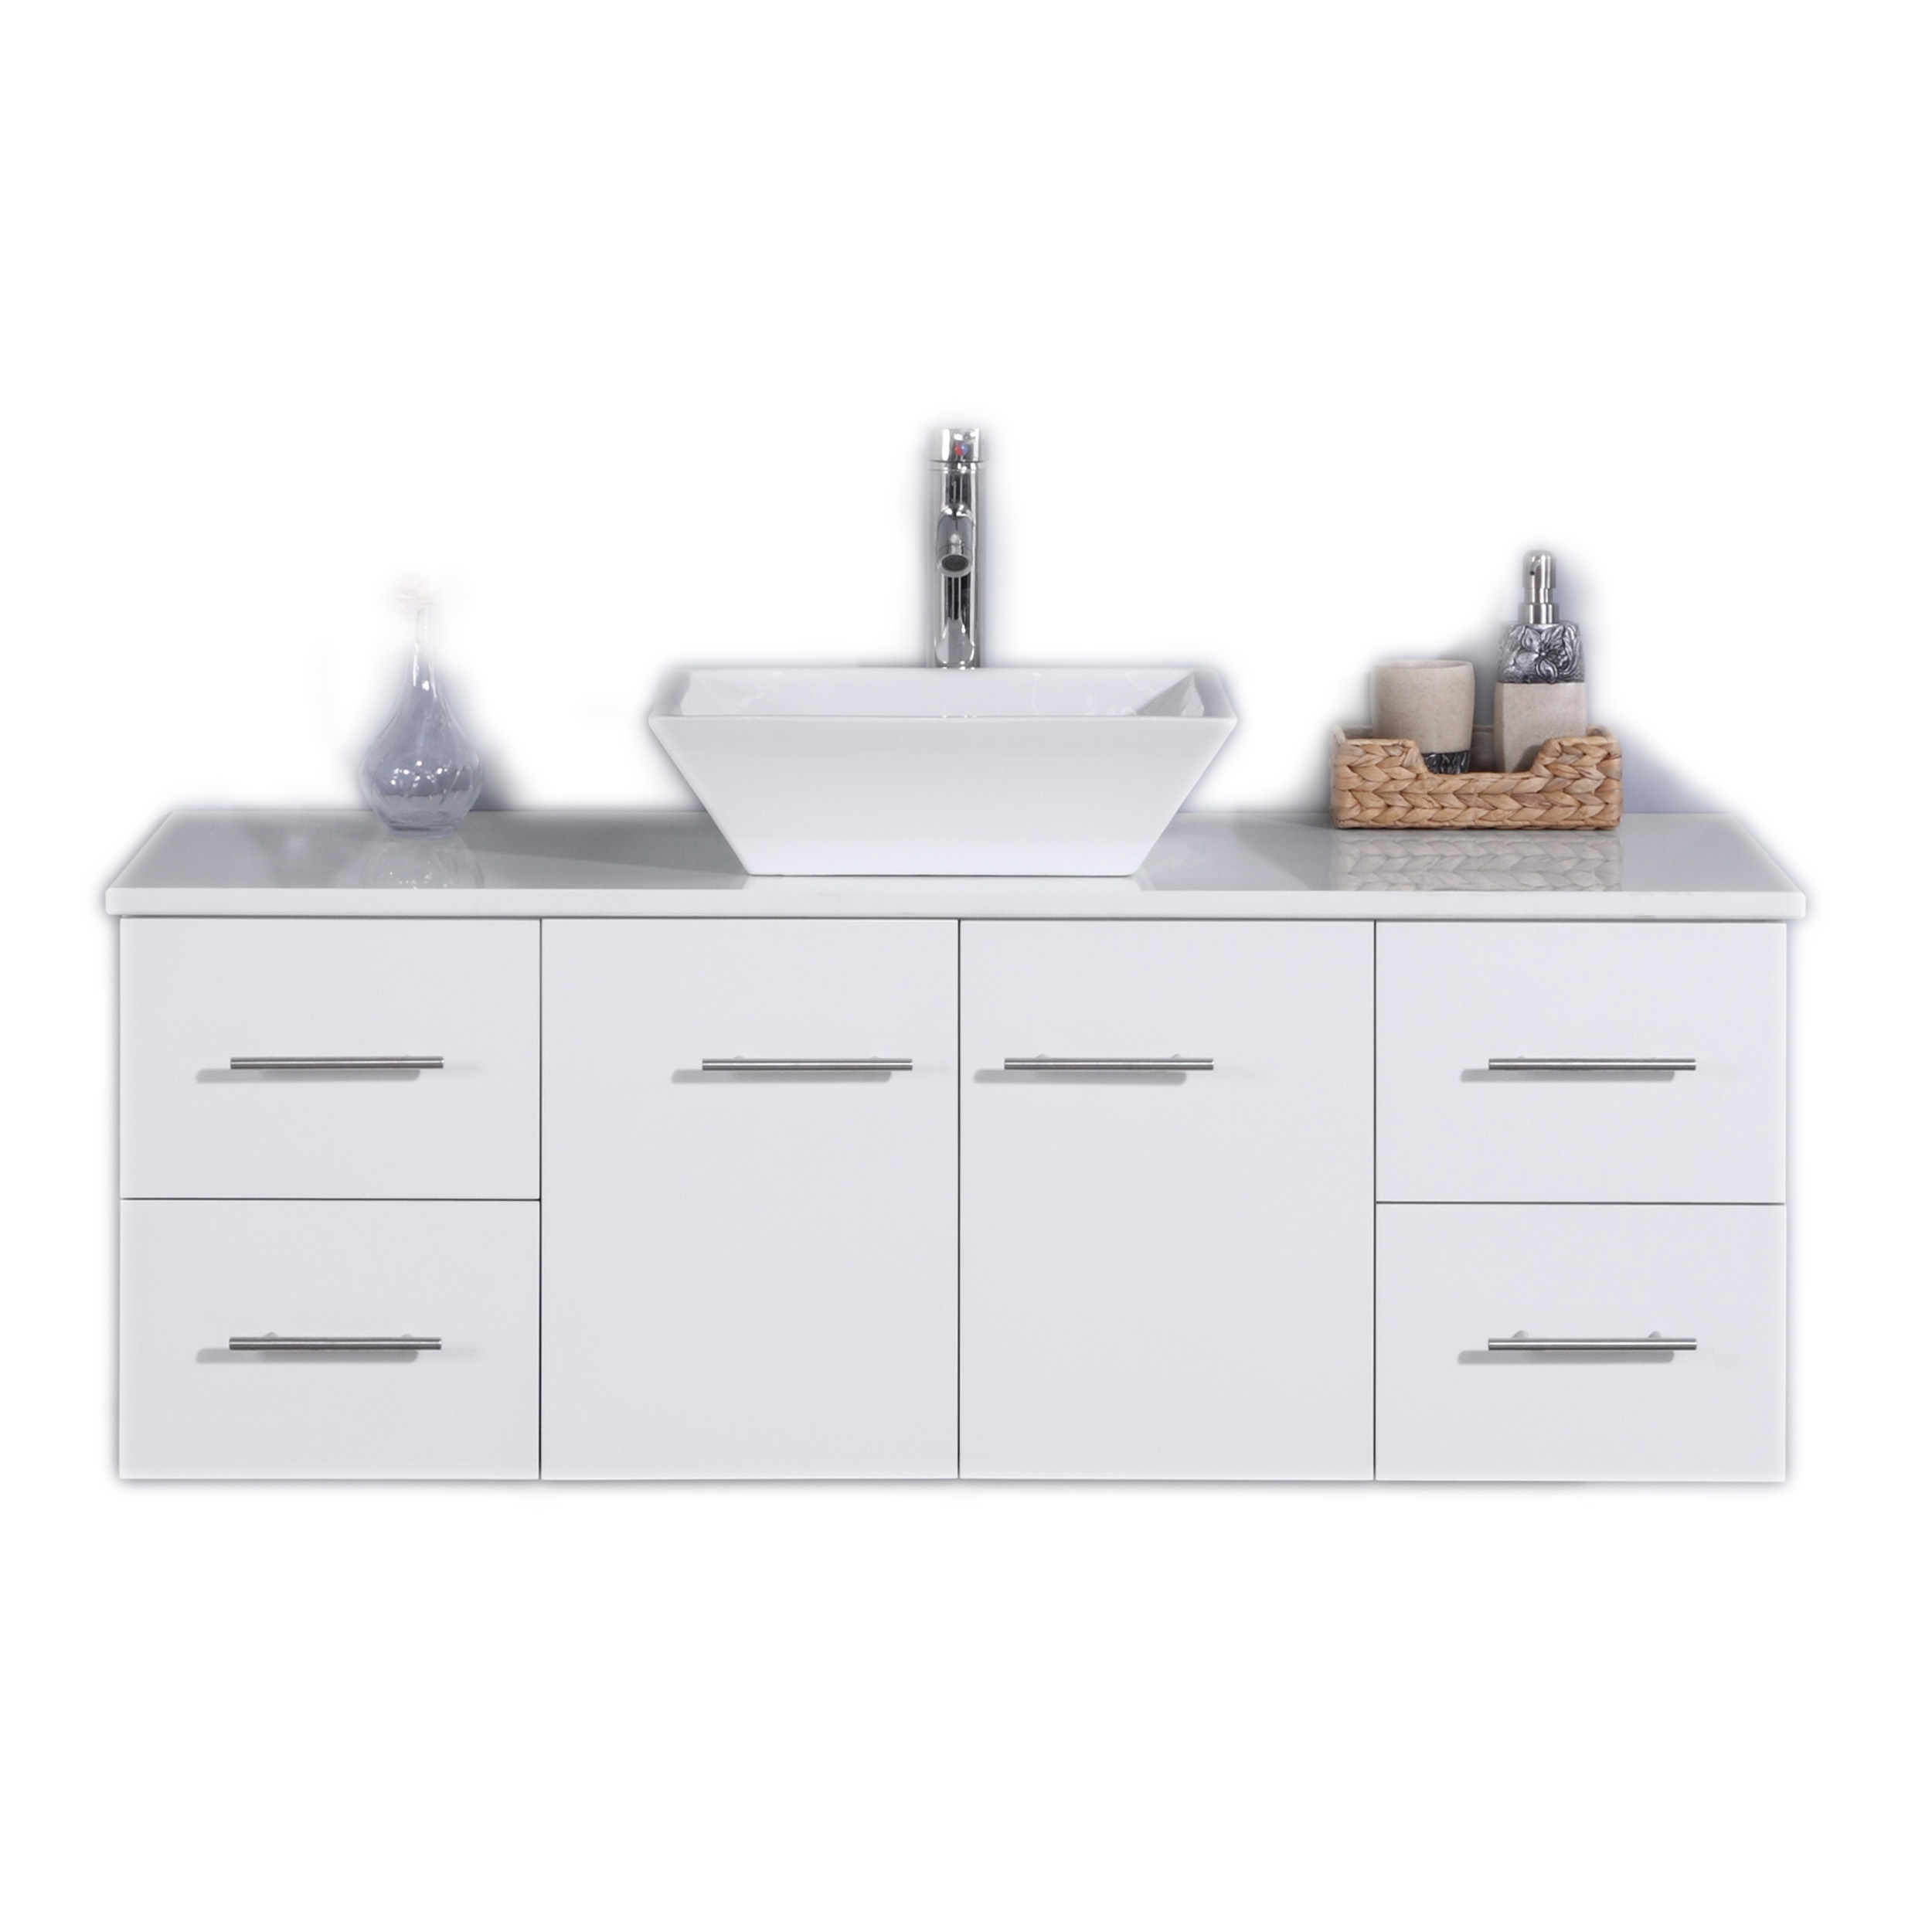 soapstone vanities full single with this granite and countertops quartz year bowl sink bathroom tops vanity of cost size trends top countertop for